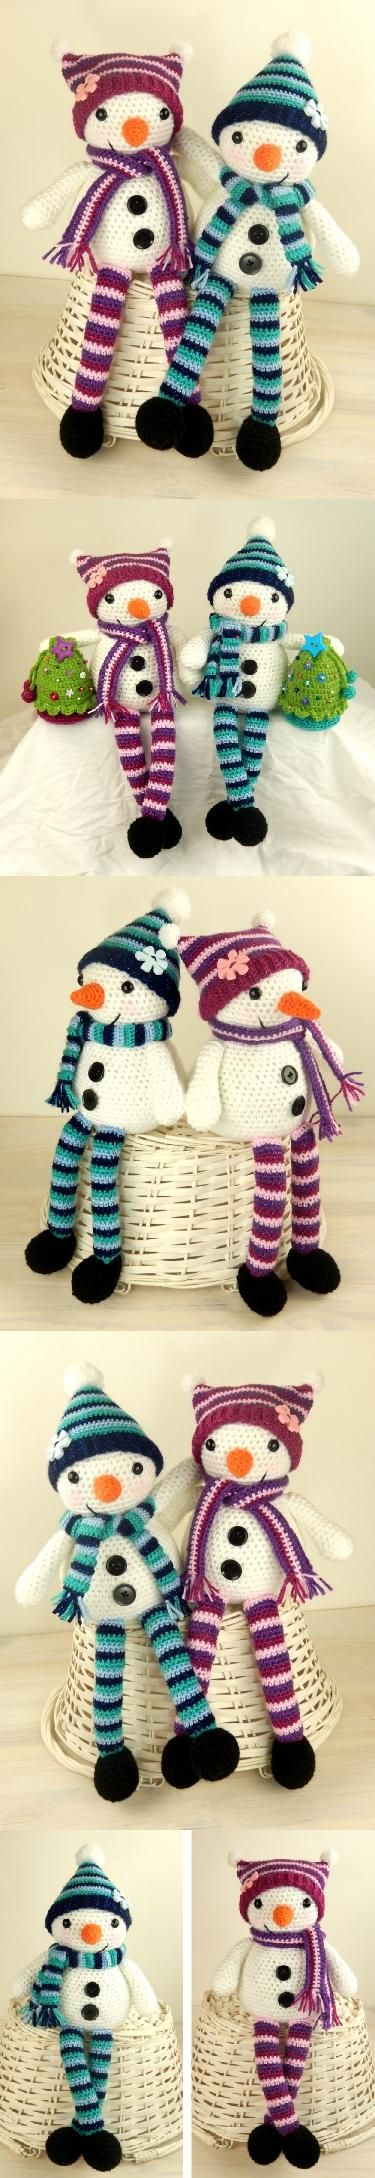 Mr and Mrs Snow amigurumi pattern by Janine Holmes at Moji-Moji Design